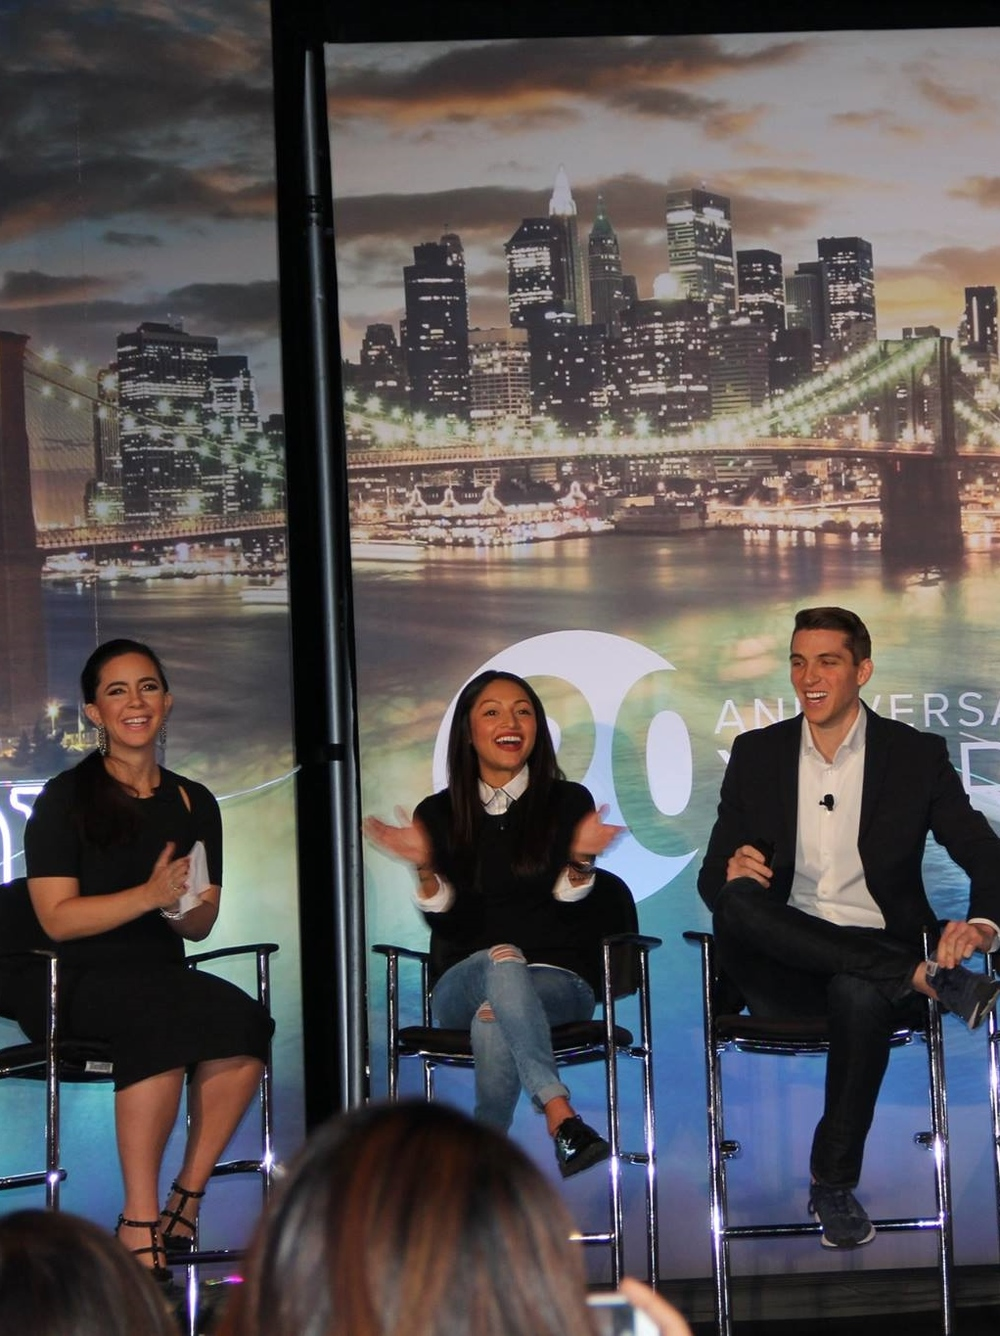 GiveBack Homes members Samantha DeBianchi, Caroline Pinal and Brett Hagler speaking at Inman Connect NY.